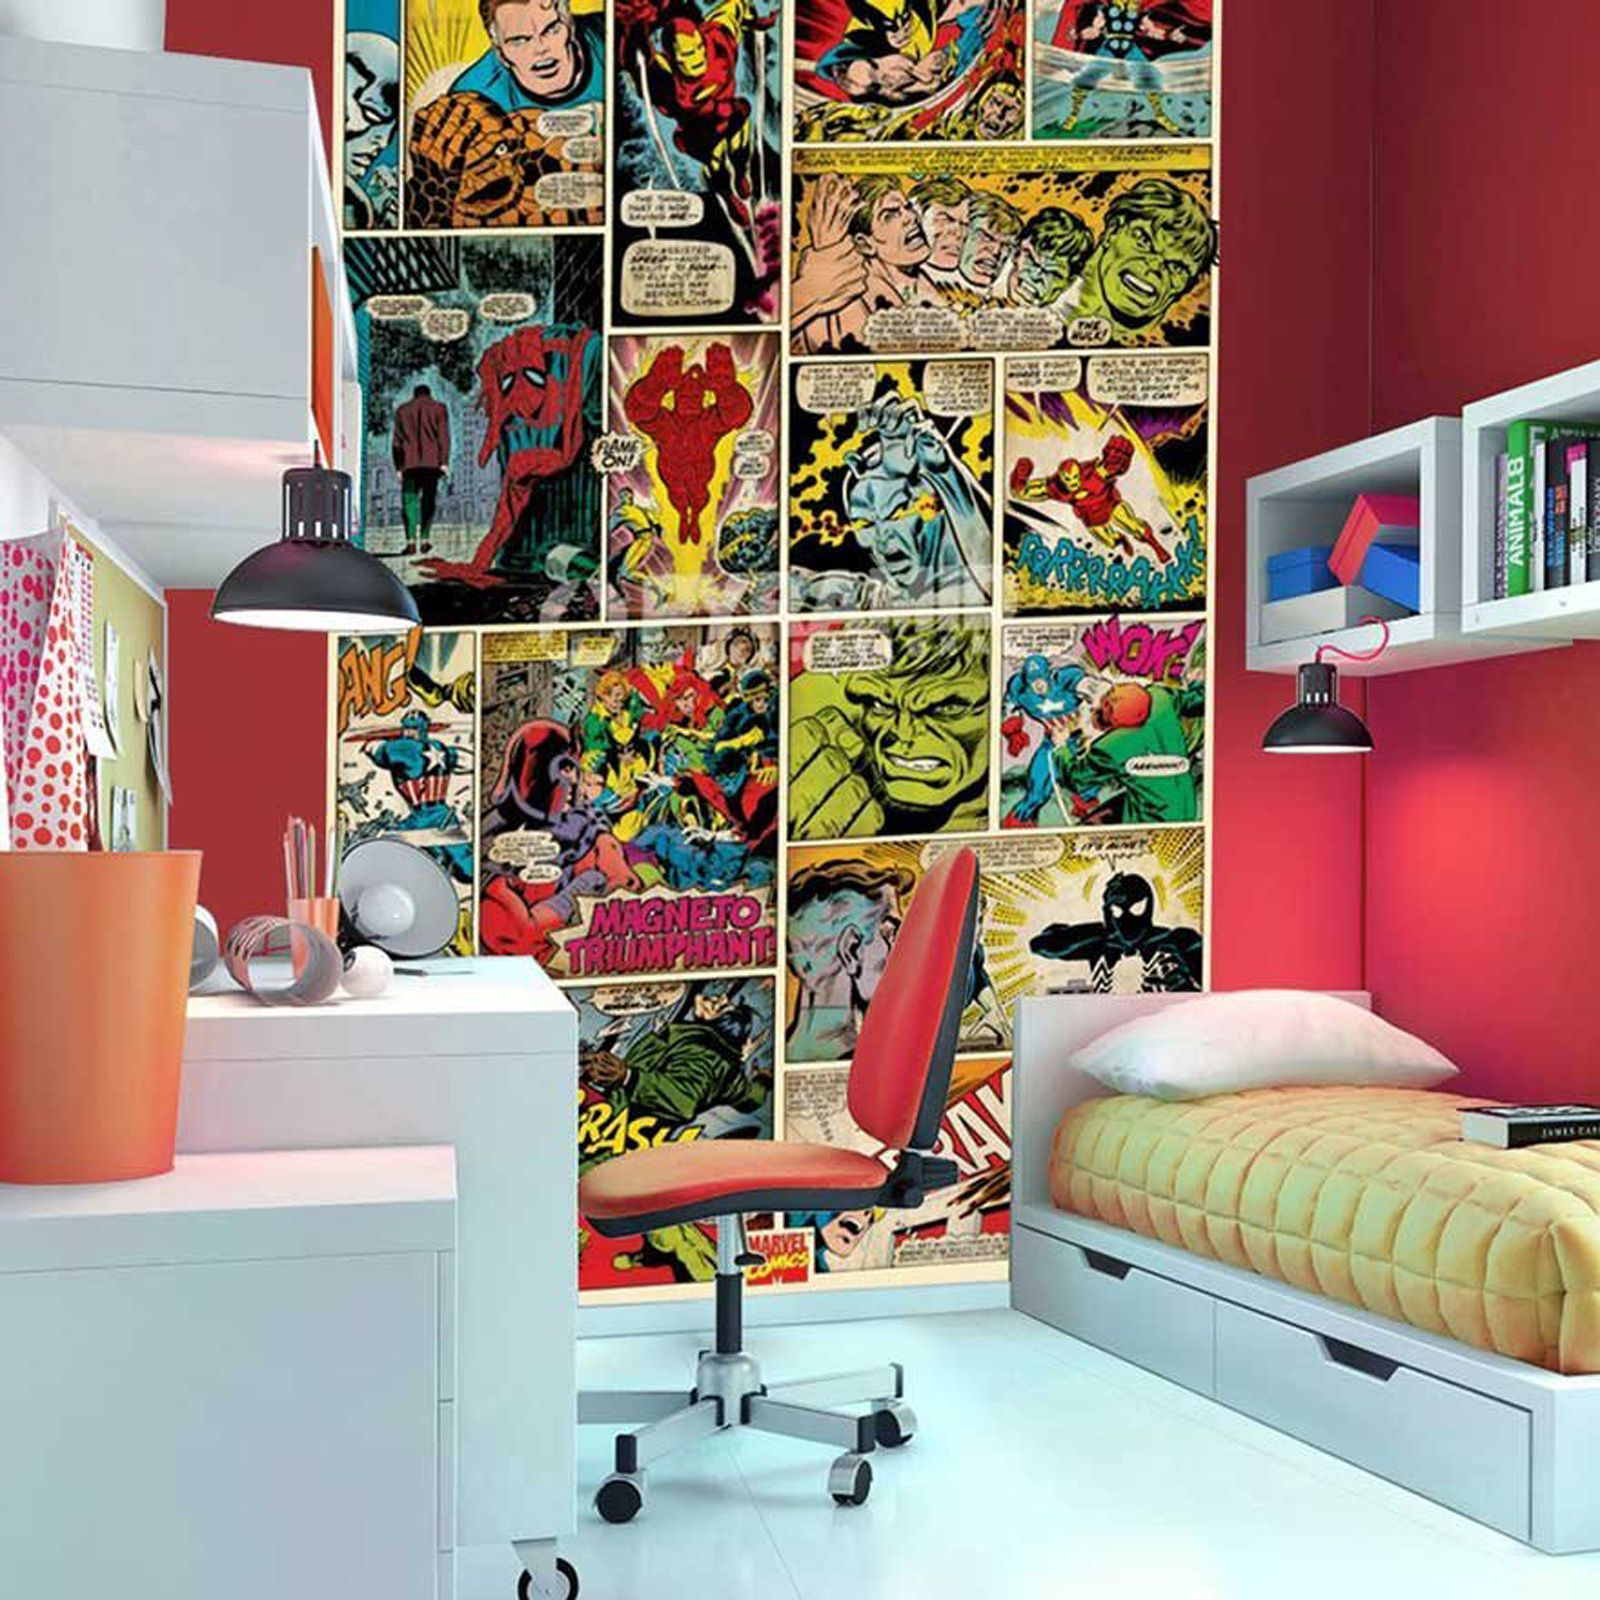 Small Bedroom Furniture Layout Bedroom Posters Vintage Bedroom Curtain Ideas Bedroom Interior Design For Kids: MARVEL COMICS AND AVENGERS WALLPAPER WALL MURALS DÉCOR